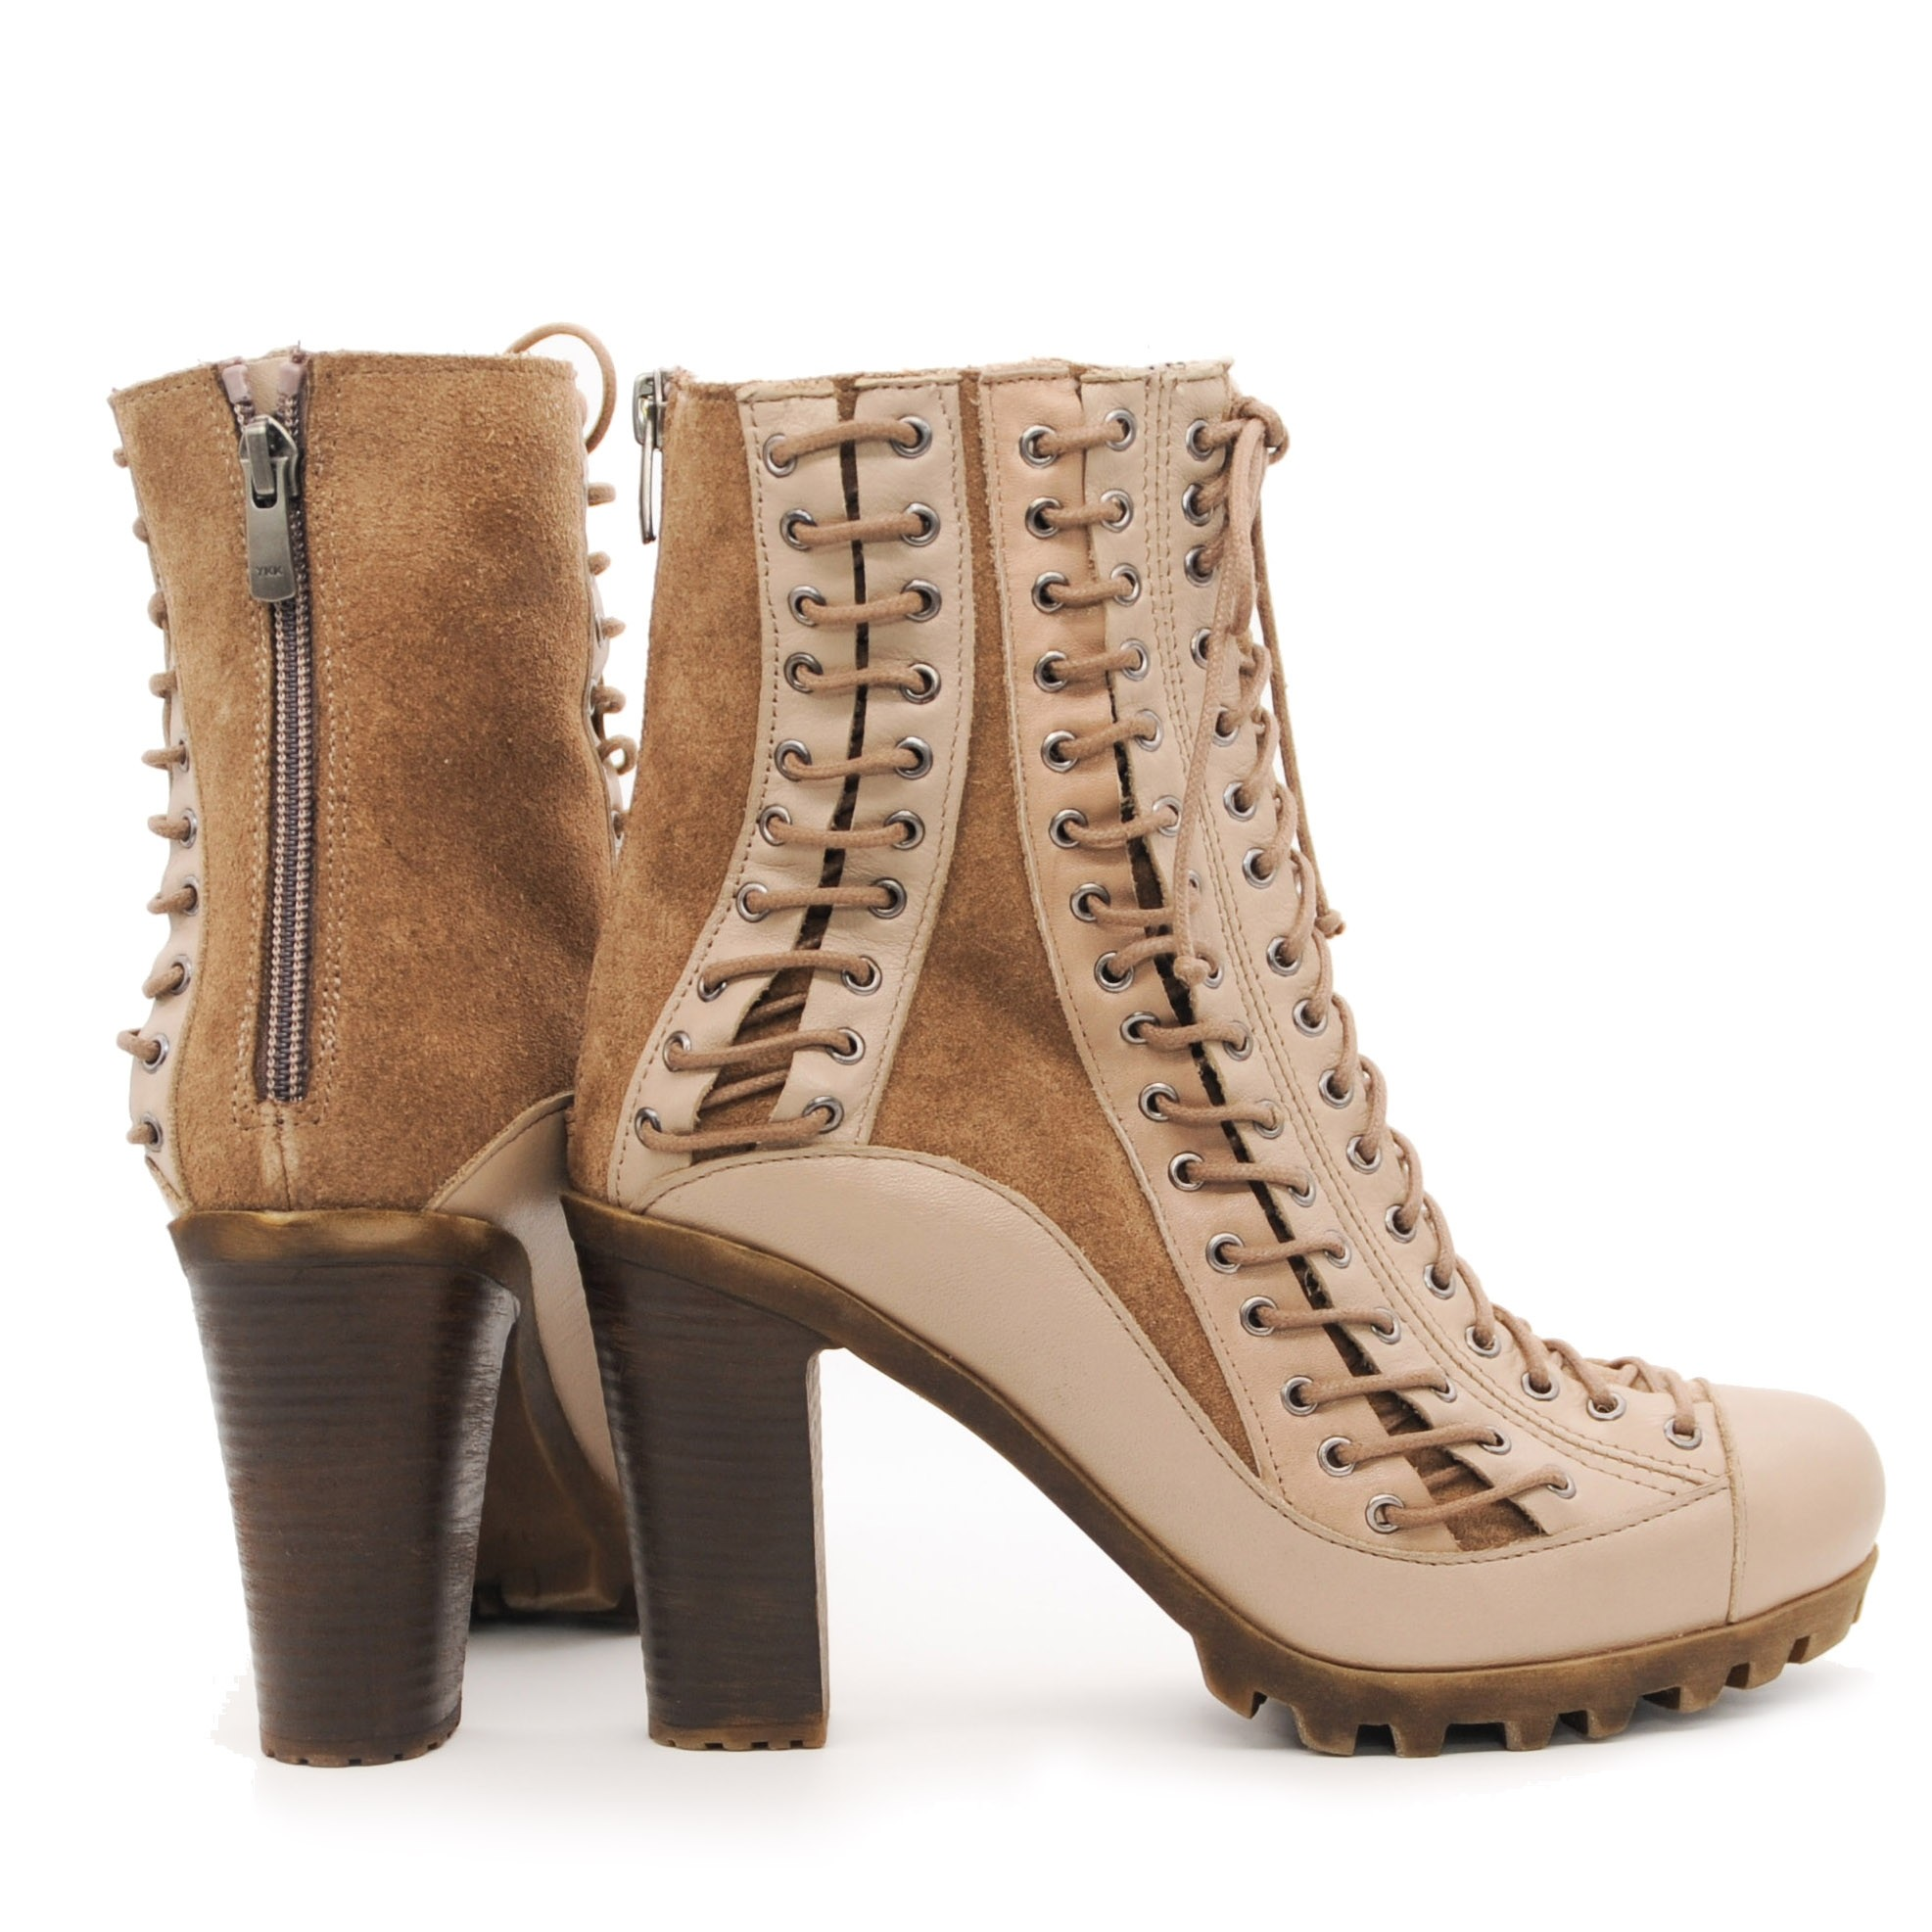 Pegia Stylish Leather and Sheepskin Lace Up Ankle Boots With Pure Wool Inner